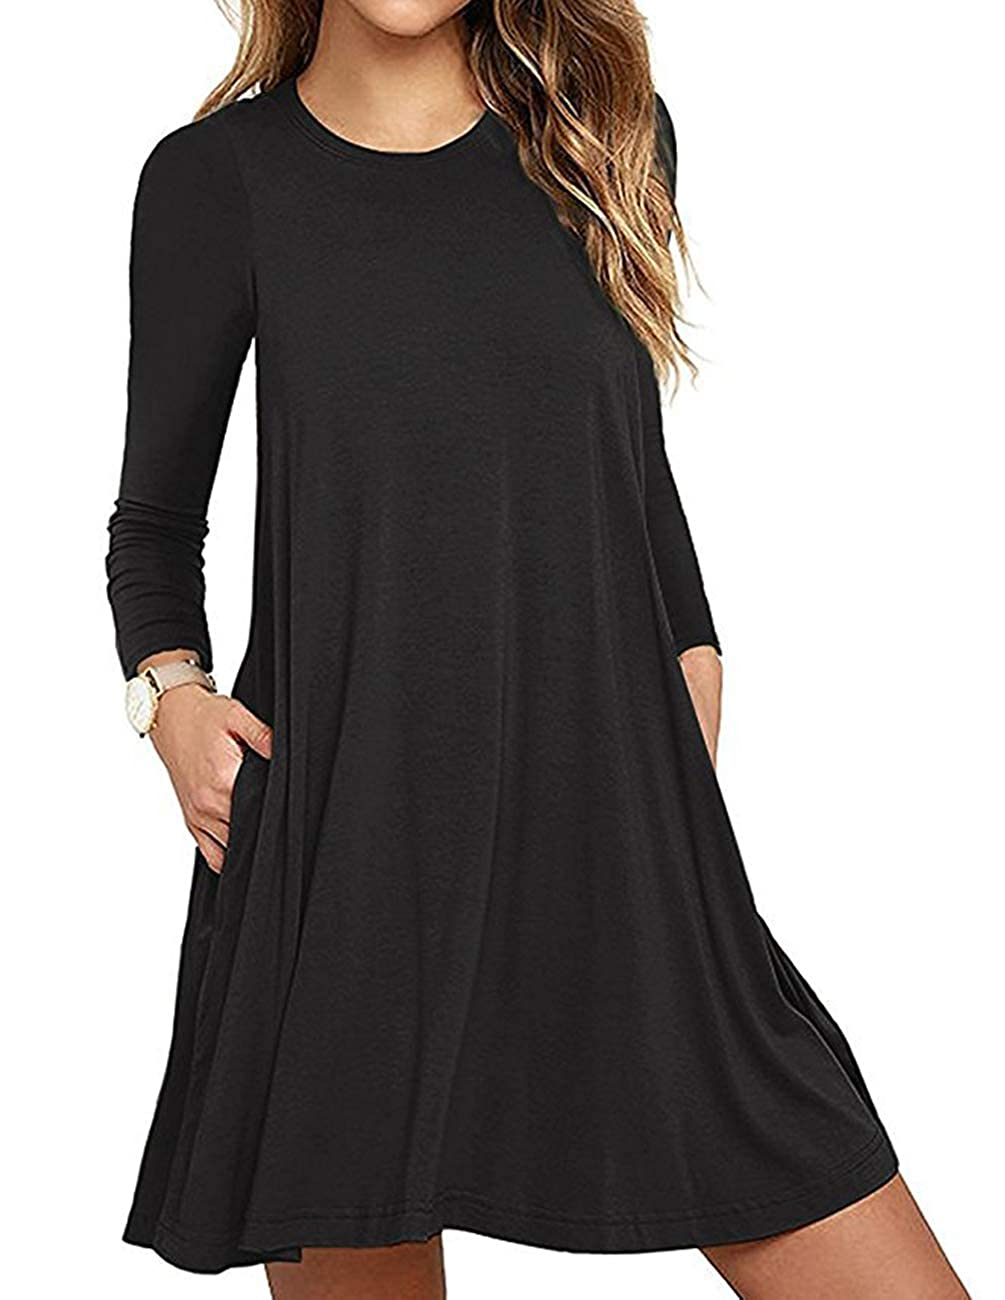 Black ZENUTA Womens Long Sleeve TShirt Dresses Casual Pockets Loose Swing Tunic Dress